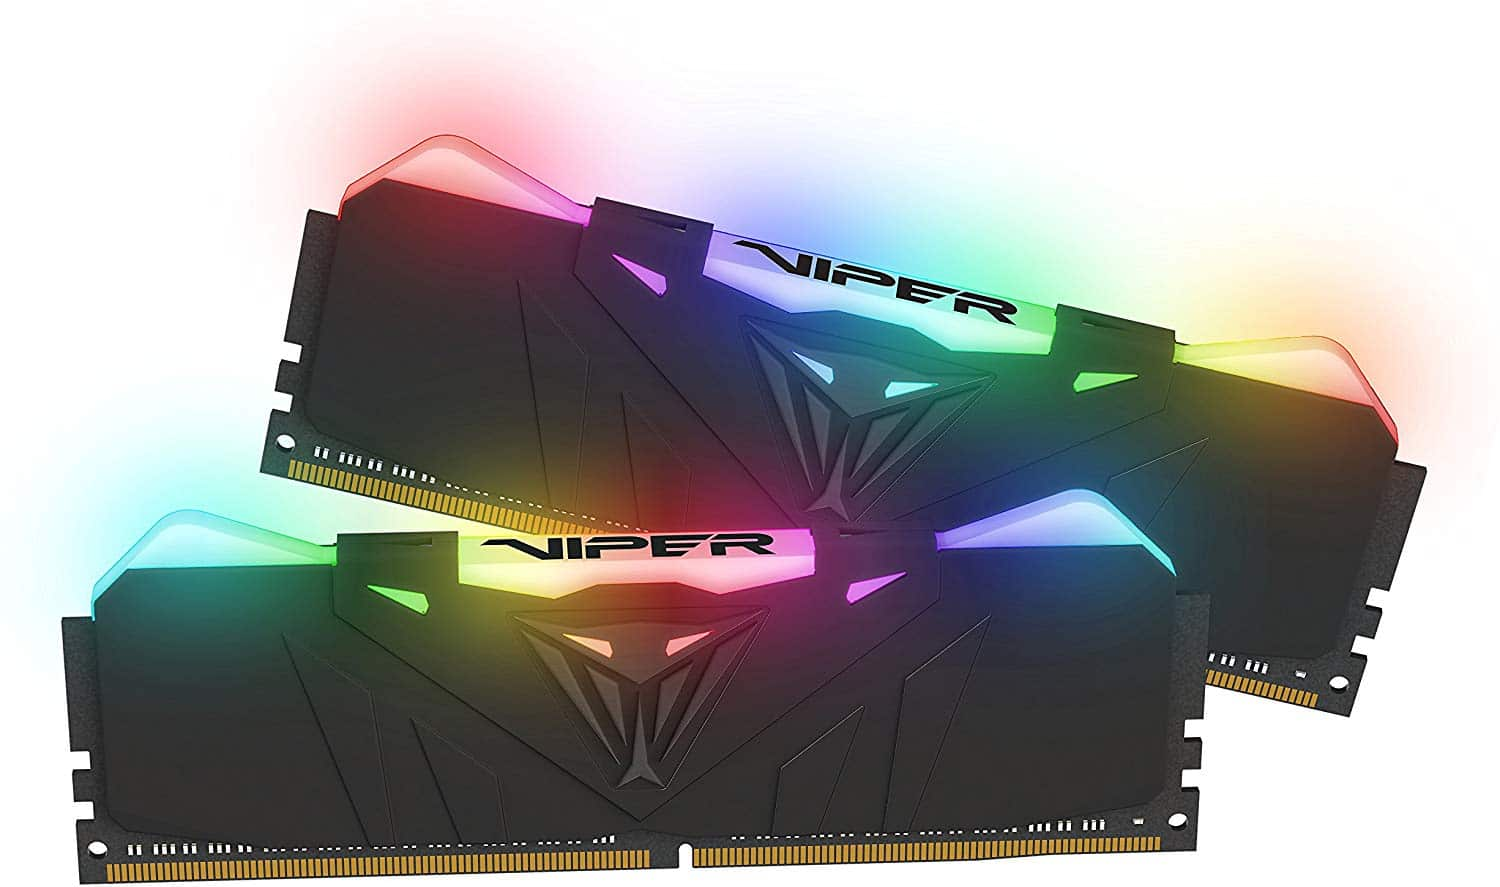 Patriot Viper Gaming RGB 16GB (2 x 8GB) DDR4 3200MHz